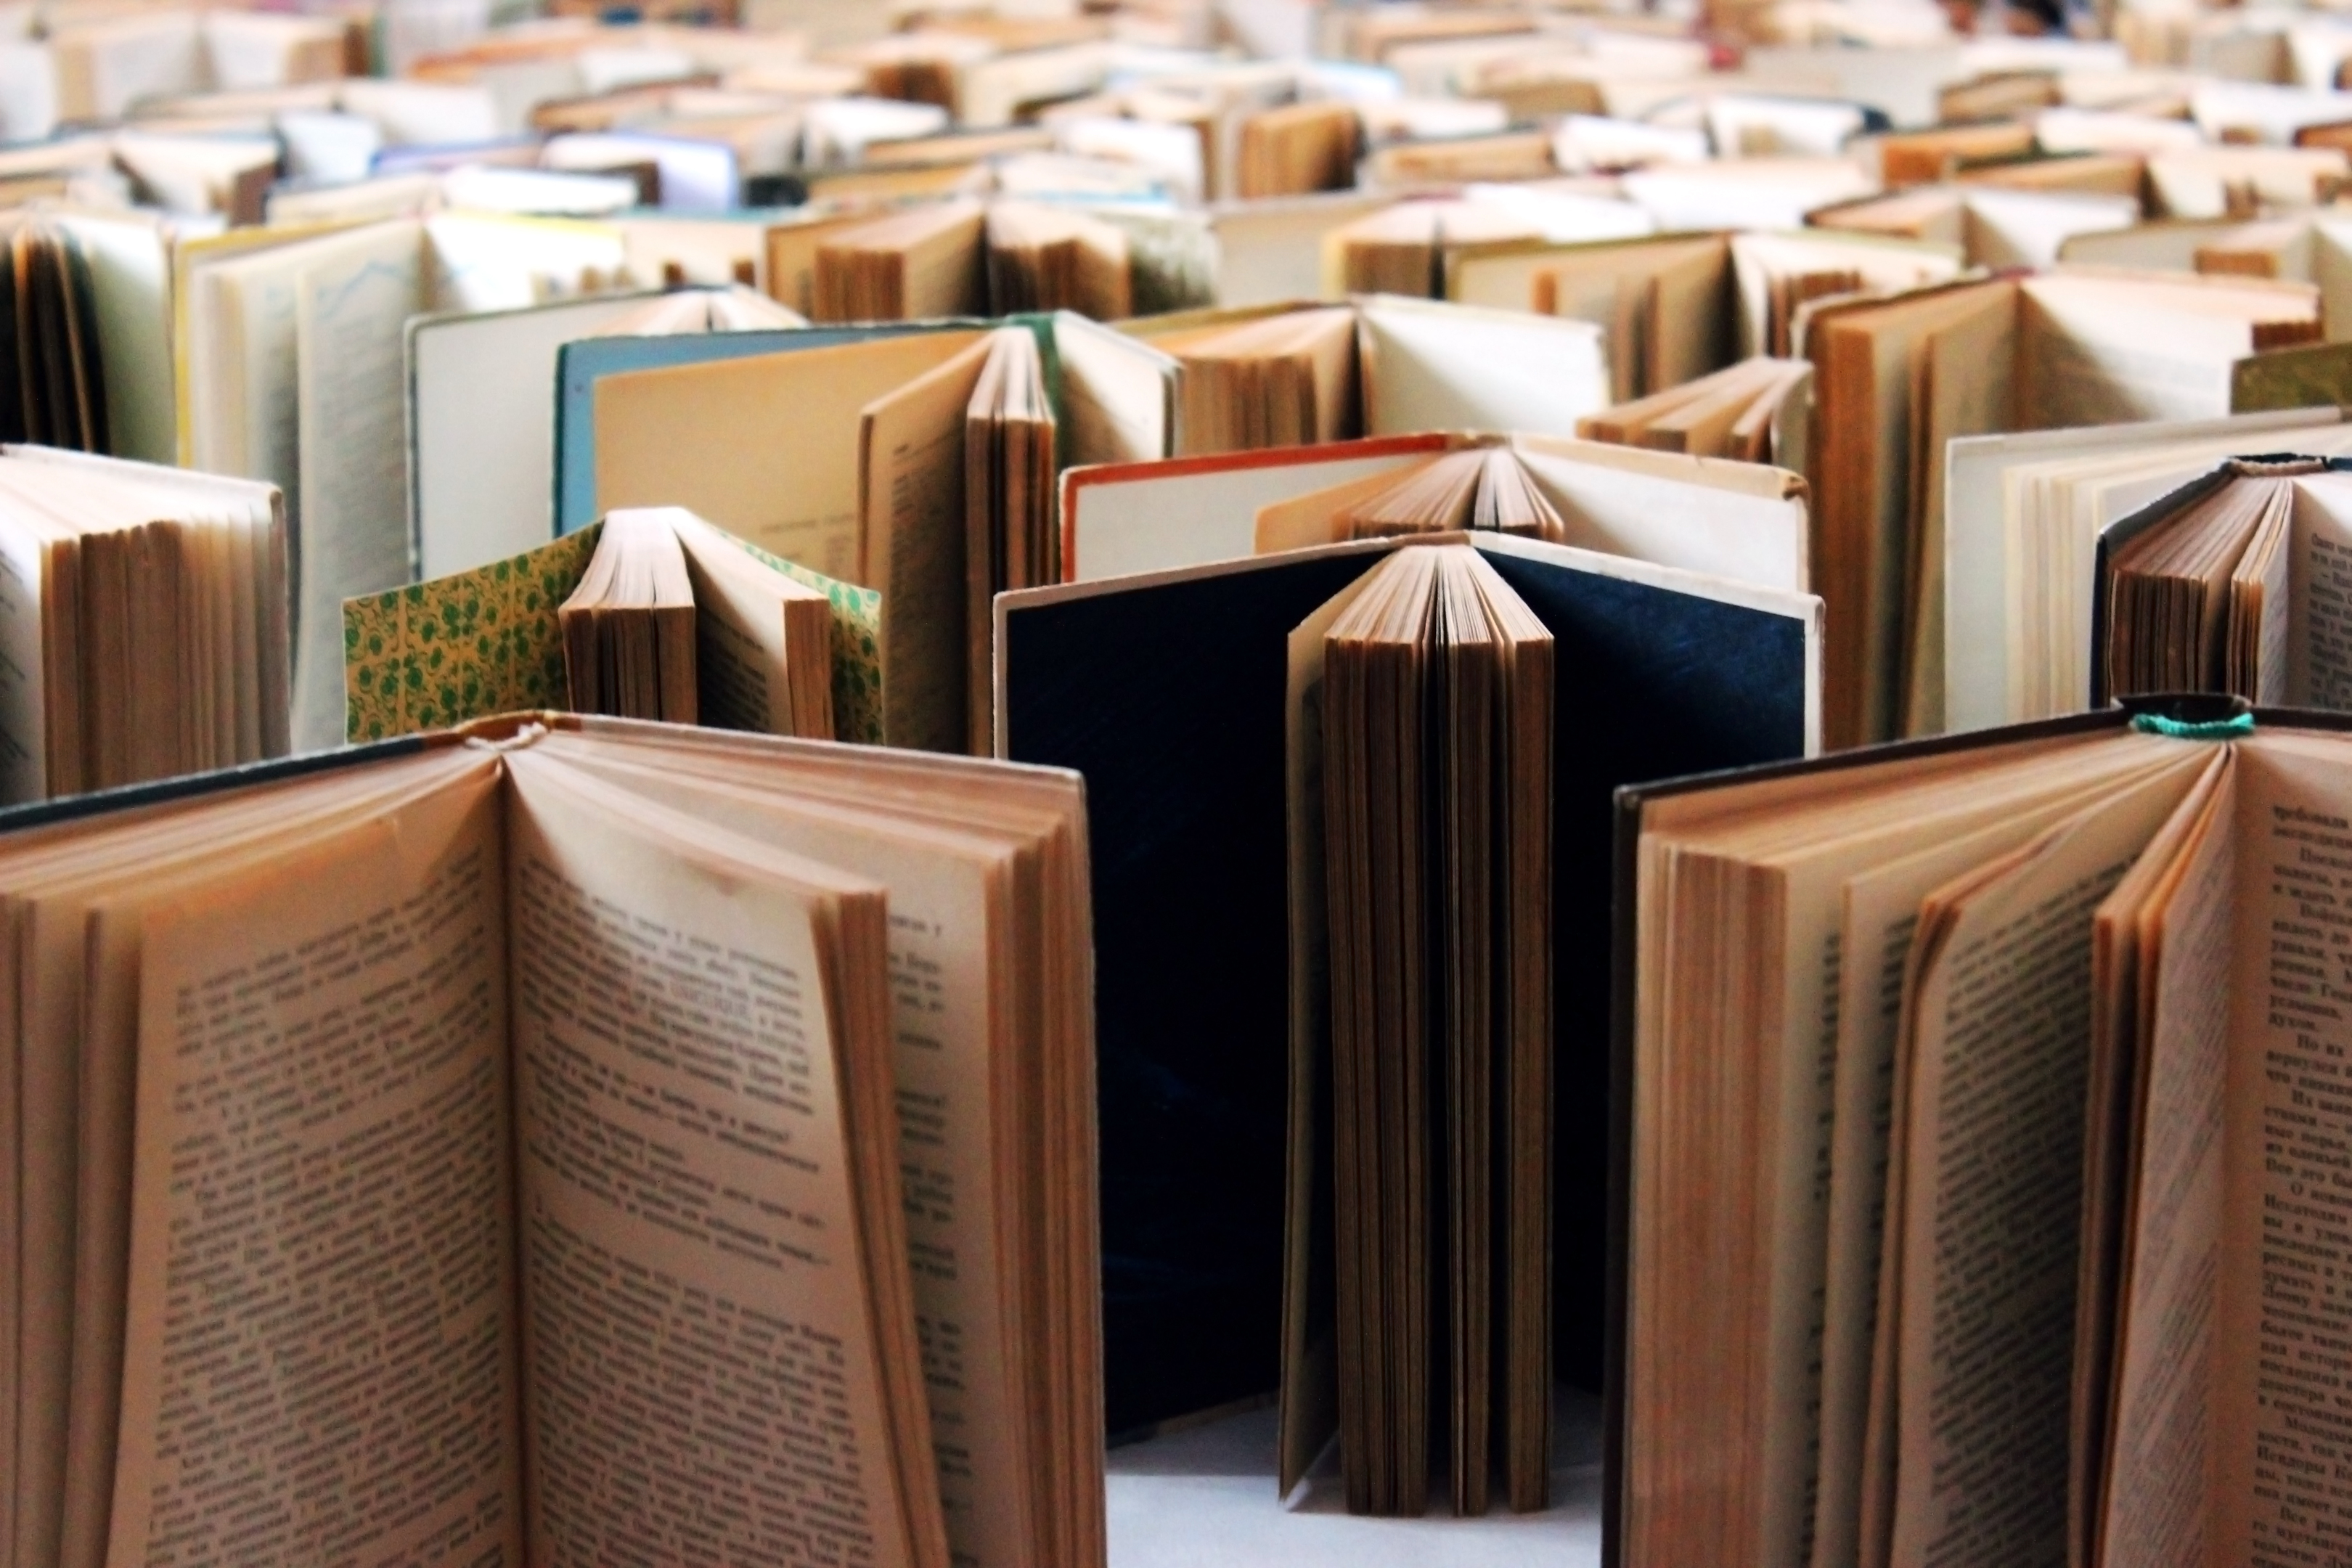 Sales of crime and thriller books have increased by 19% since 2015 (Getty Images/iStock)